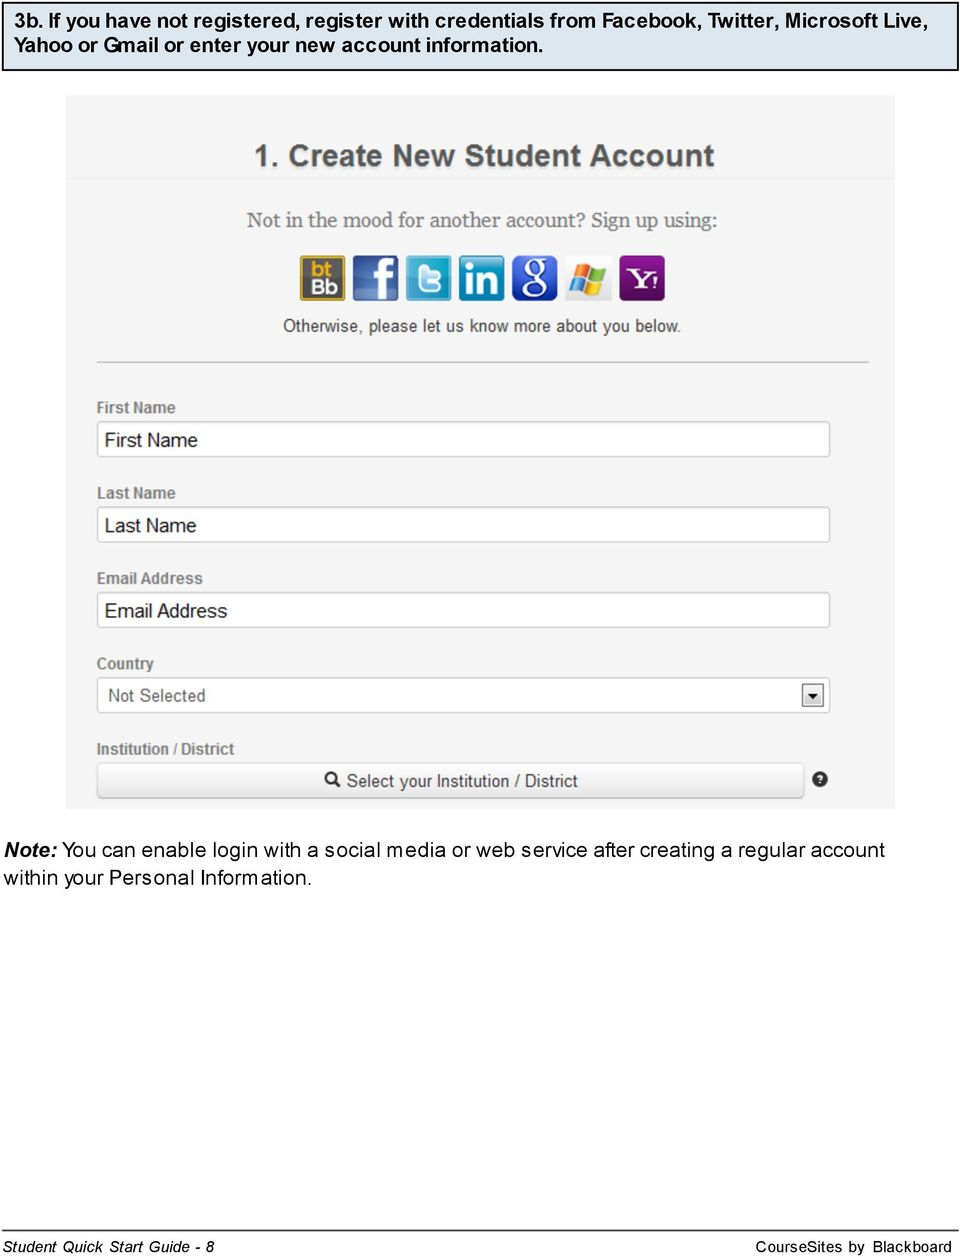 Note: You can enable login with a social media or web service after creating